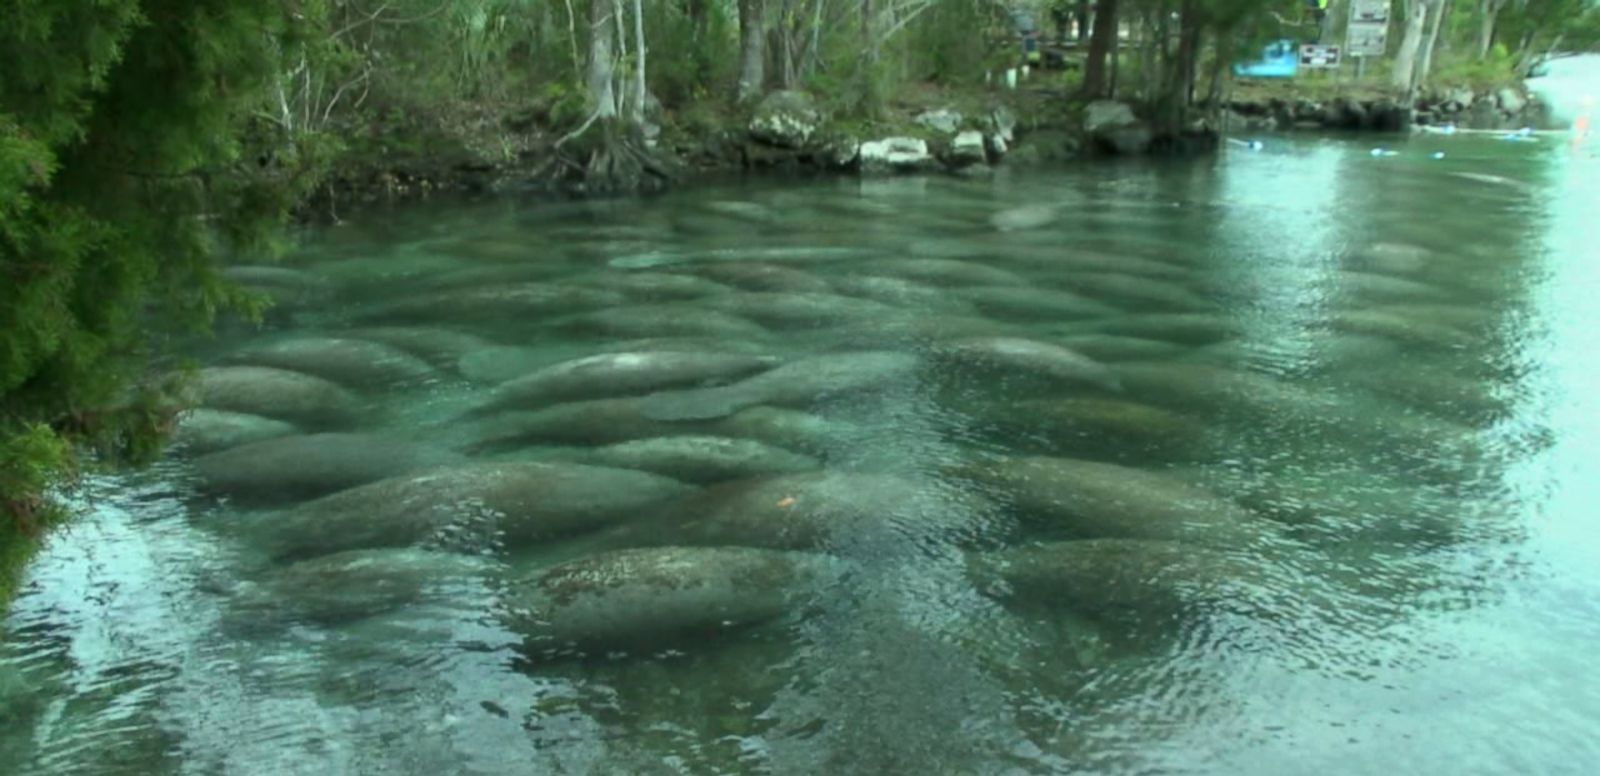 VIDEO: Wildlife officials say it's the largest consistent gathering of manatees at the Florida location in recent history.